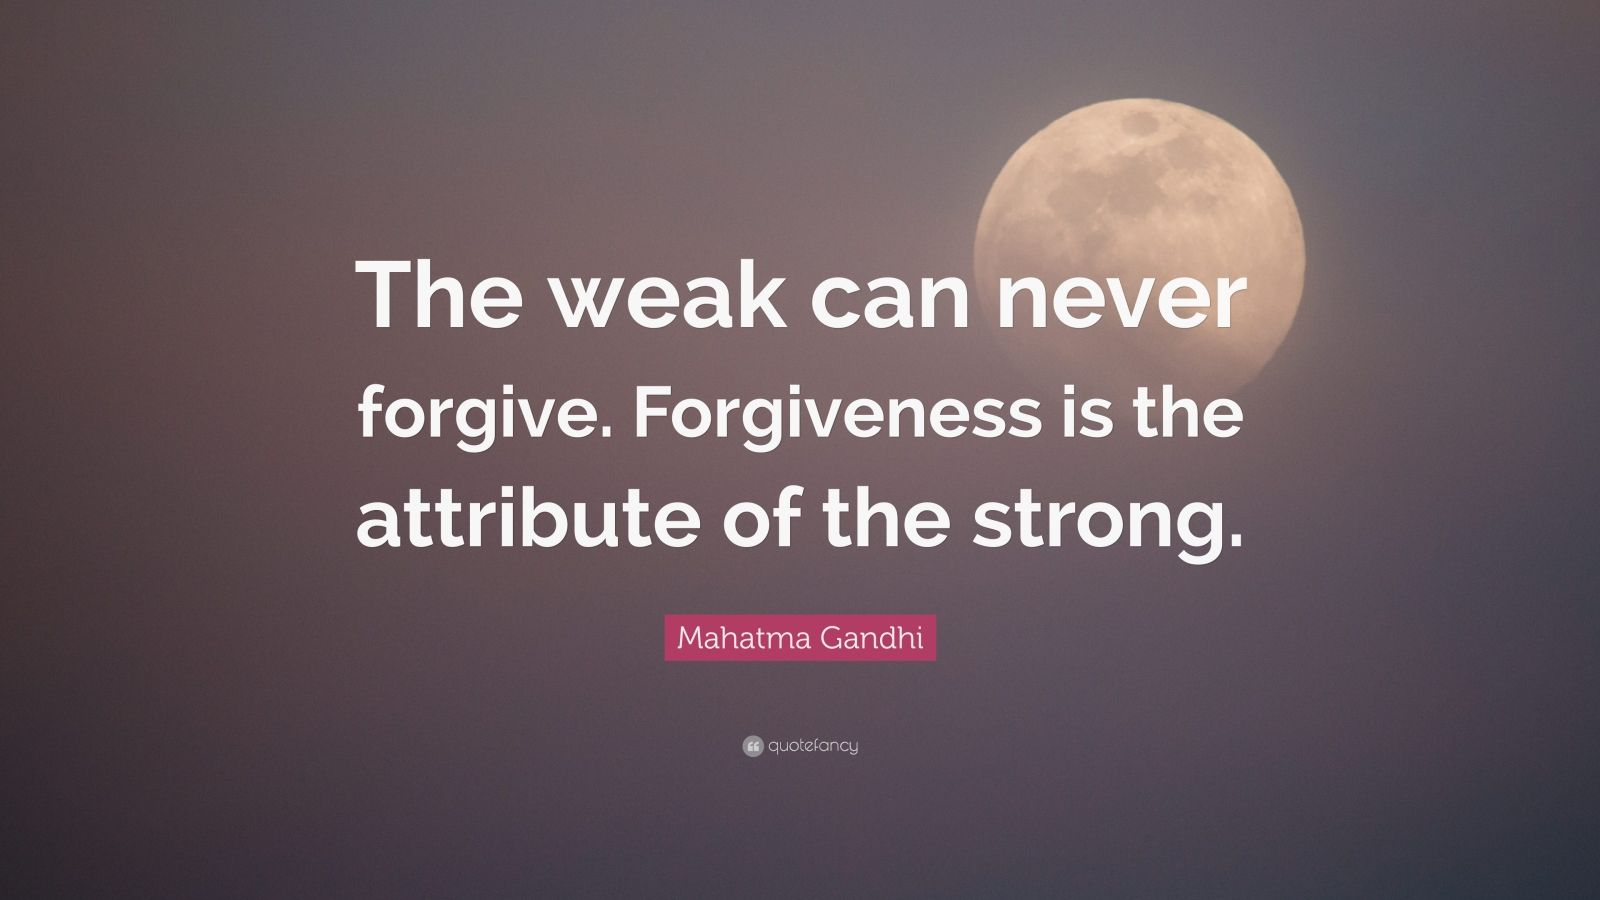 """forgiveness is the attribute of the strong essay Forgiveness, choosing to overcome your desire for revenge  forgiveness is  the attribute of the strong"""" ~ mahatma gandhi (1869 - 1948) """"the stupid neither   book: forgive for good of repentance , an essay by michel de montaigne."""